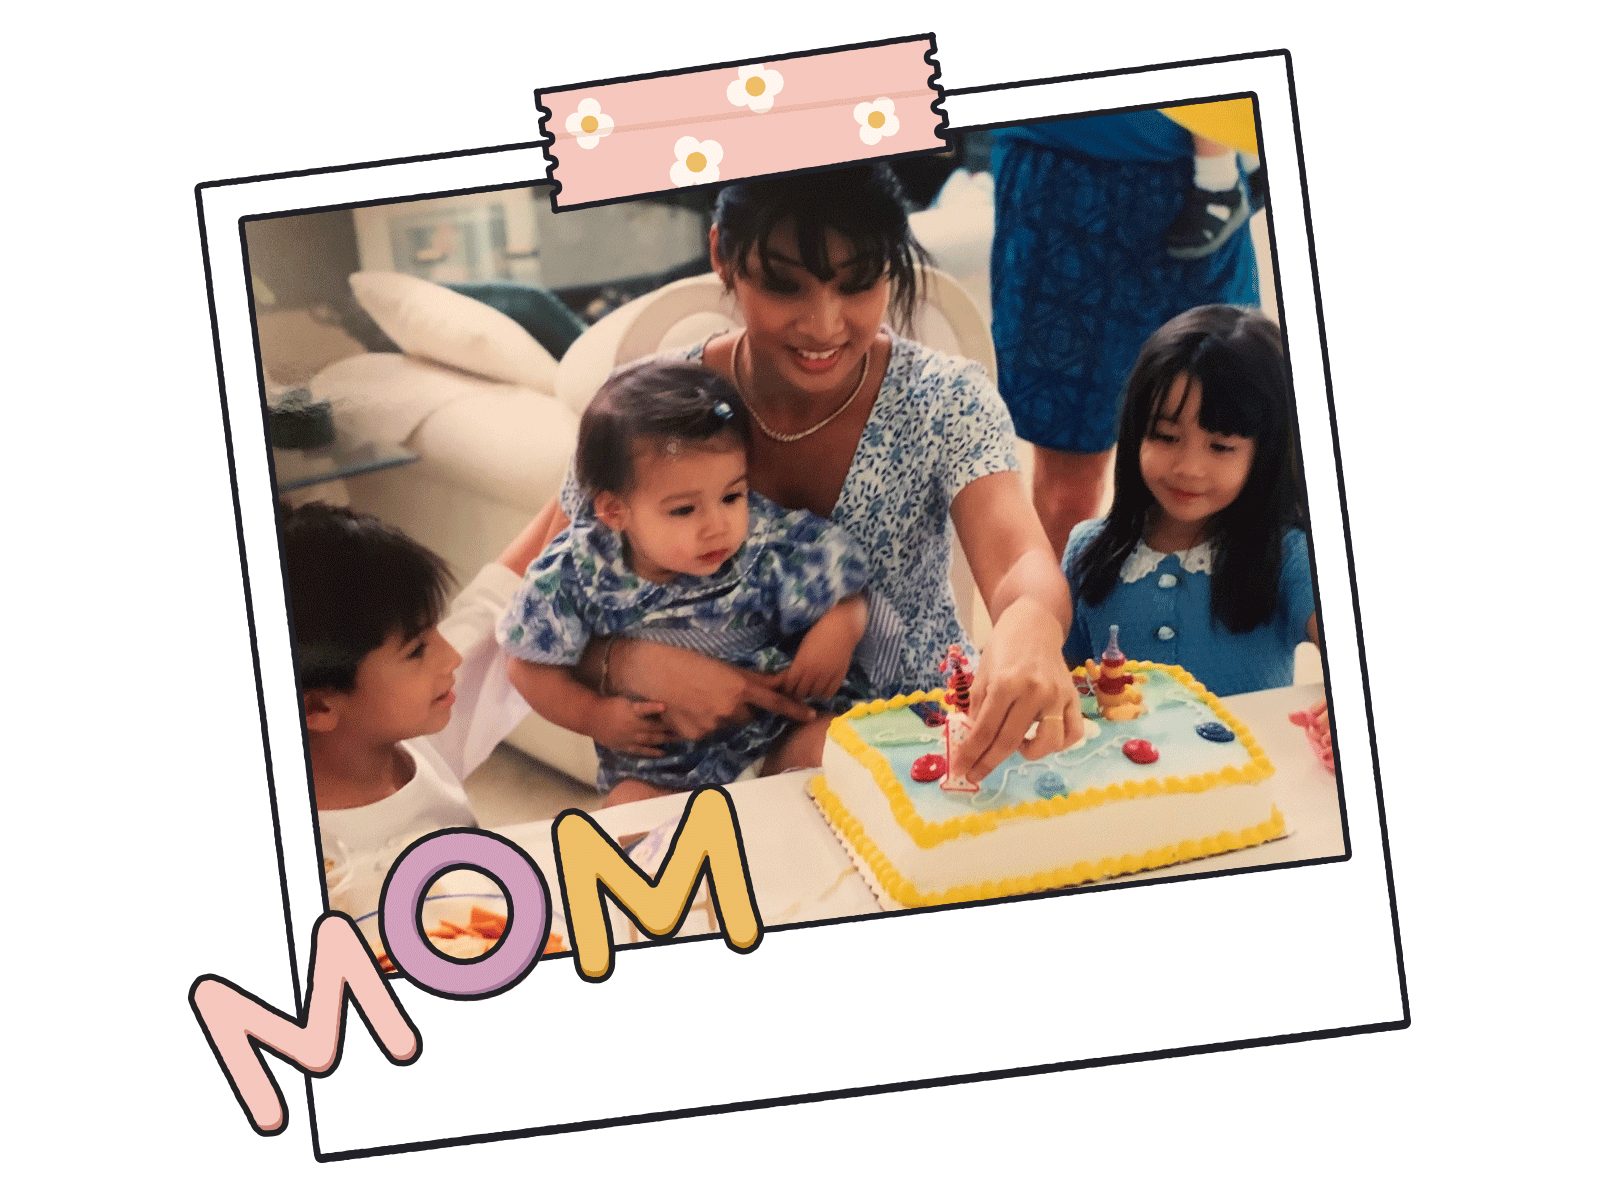 Mother seated at table with two young children and baby on her lap, at birthday celebration